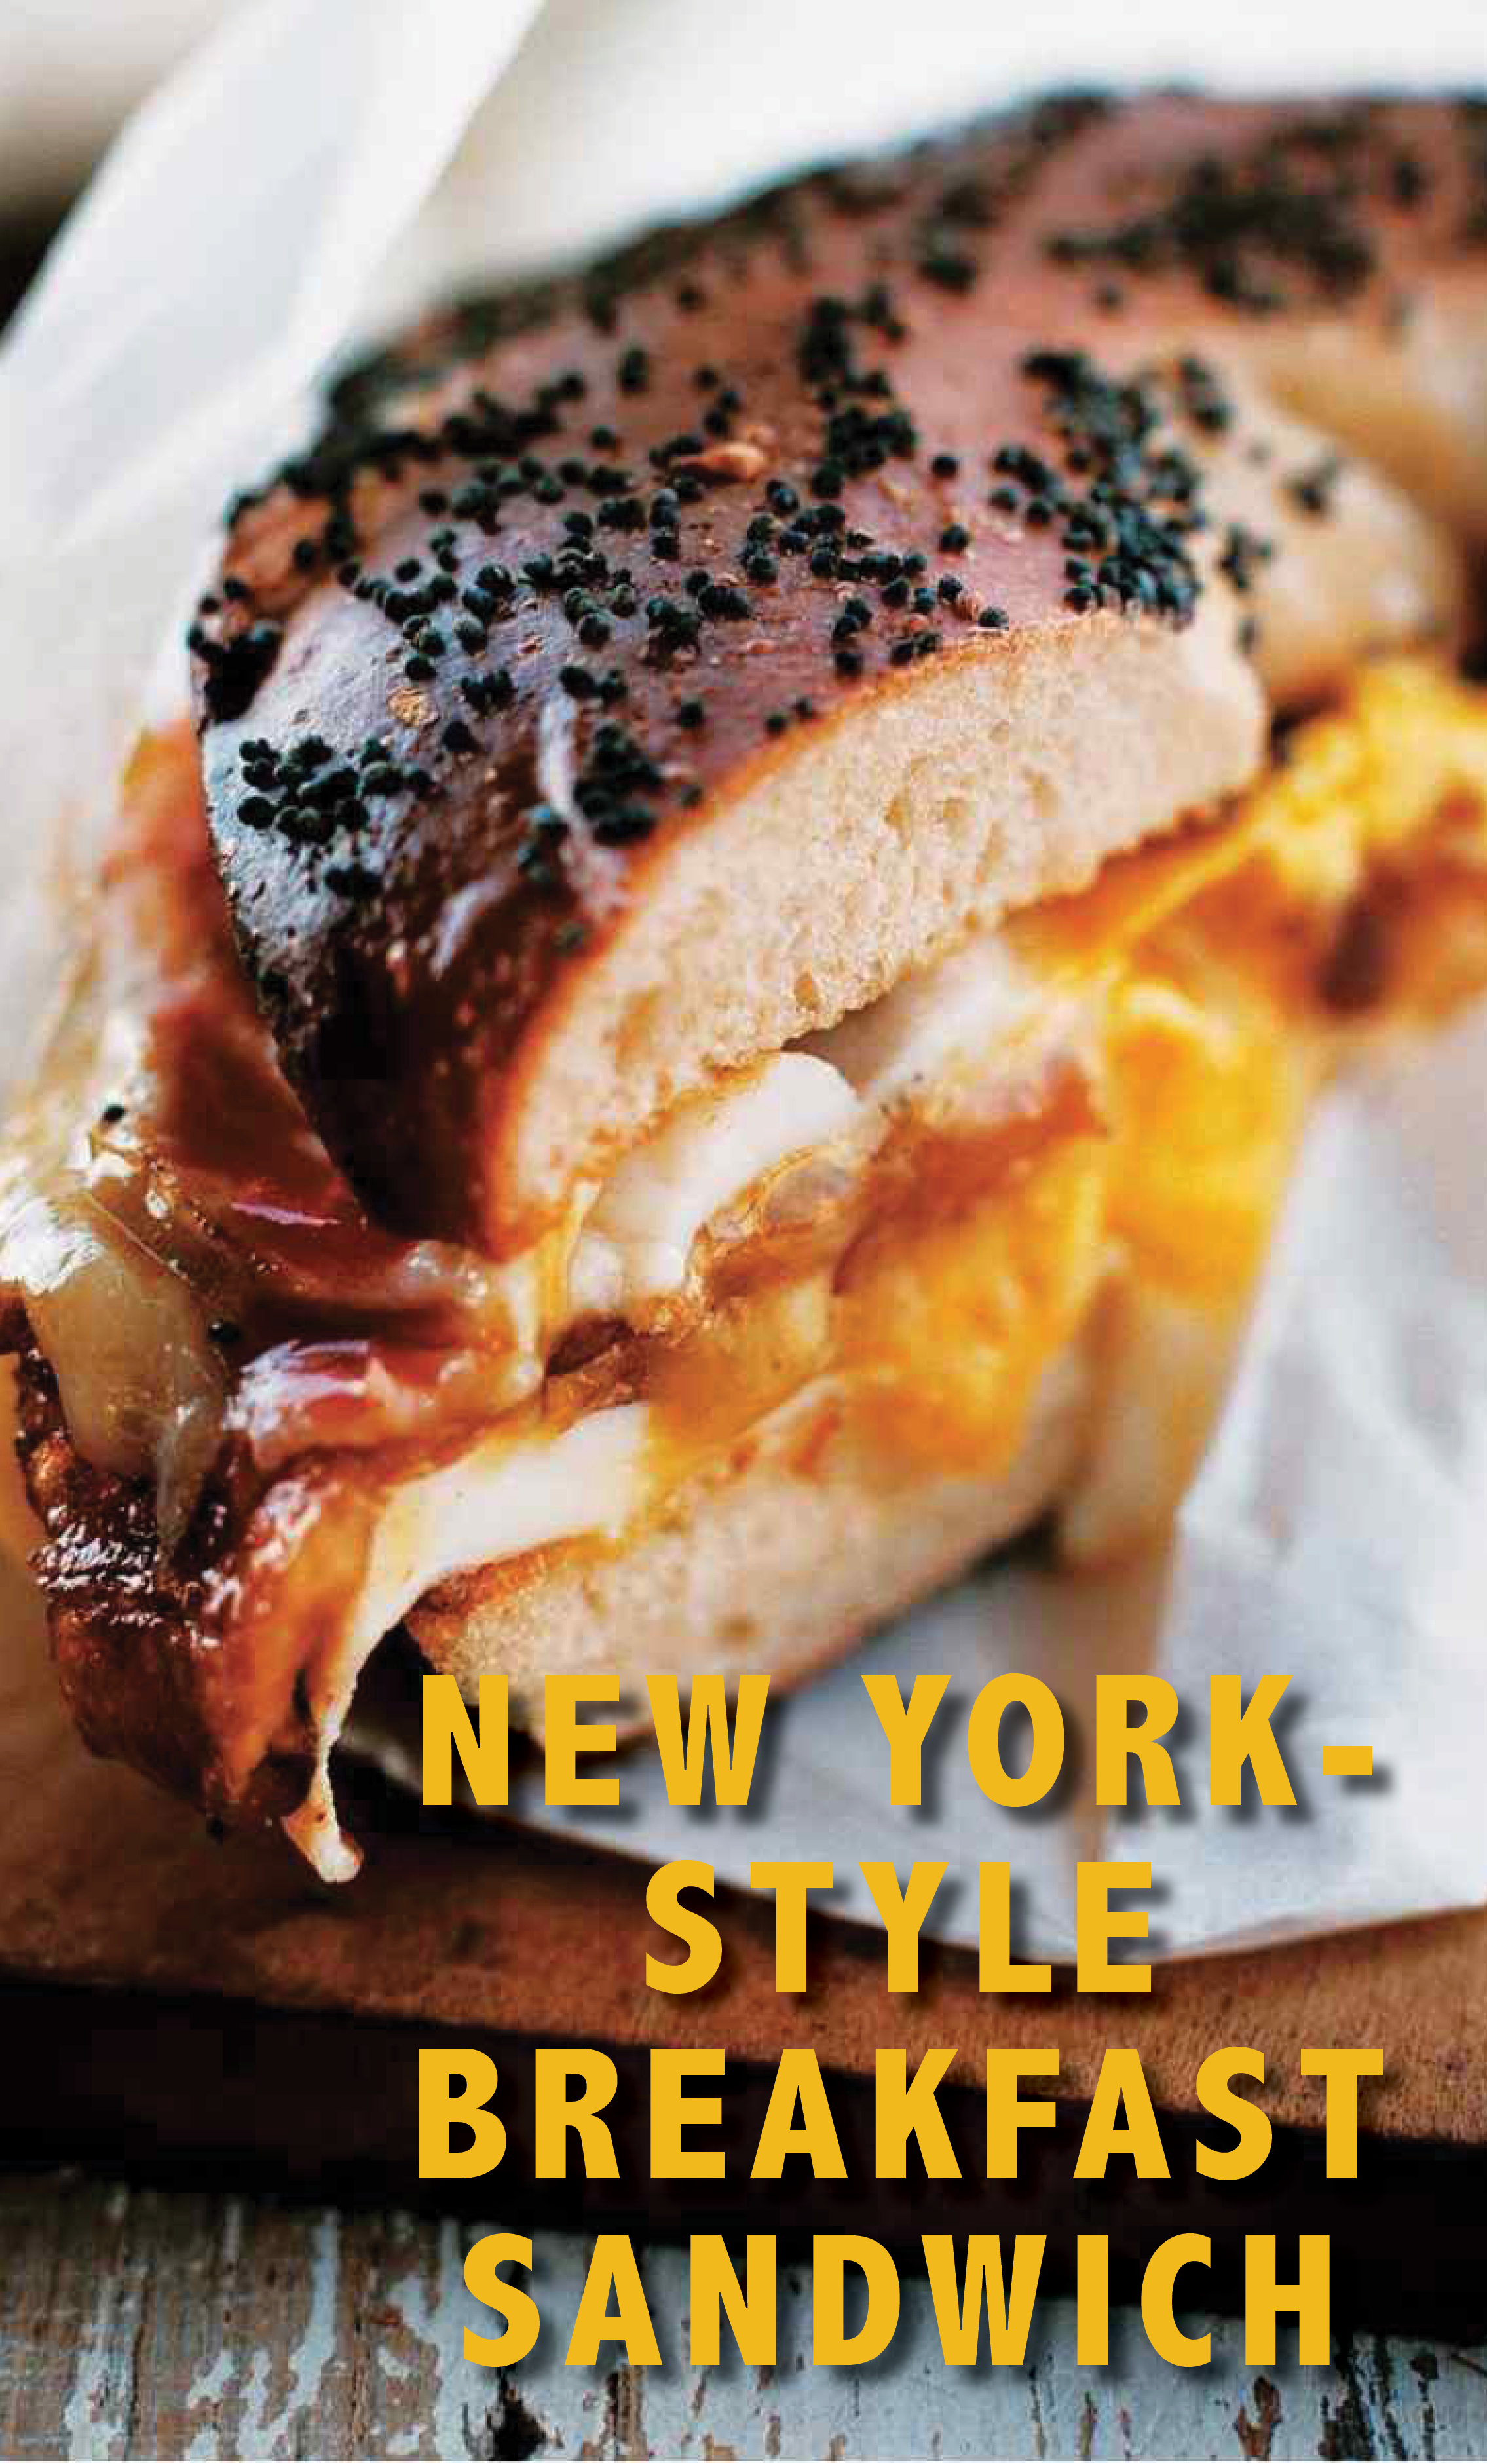 Bacon Egg and Cheese Sandwich New York City Deli Style